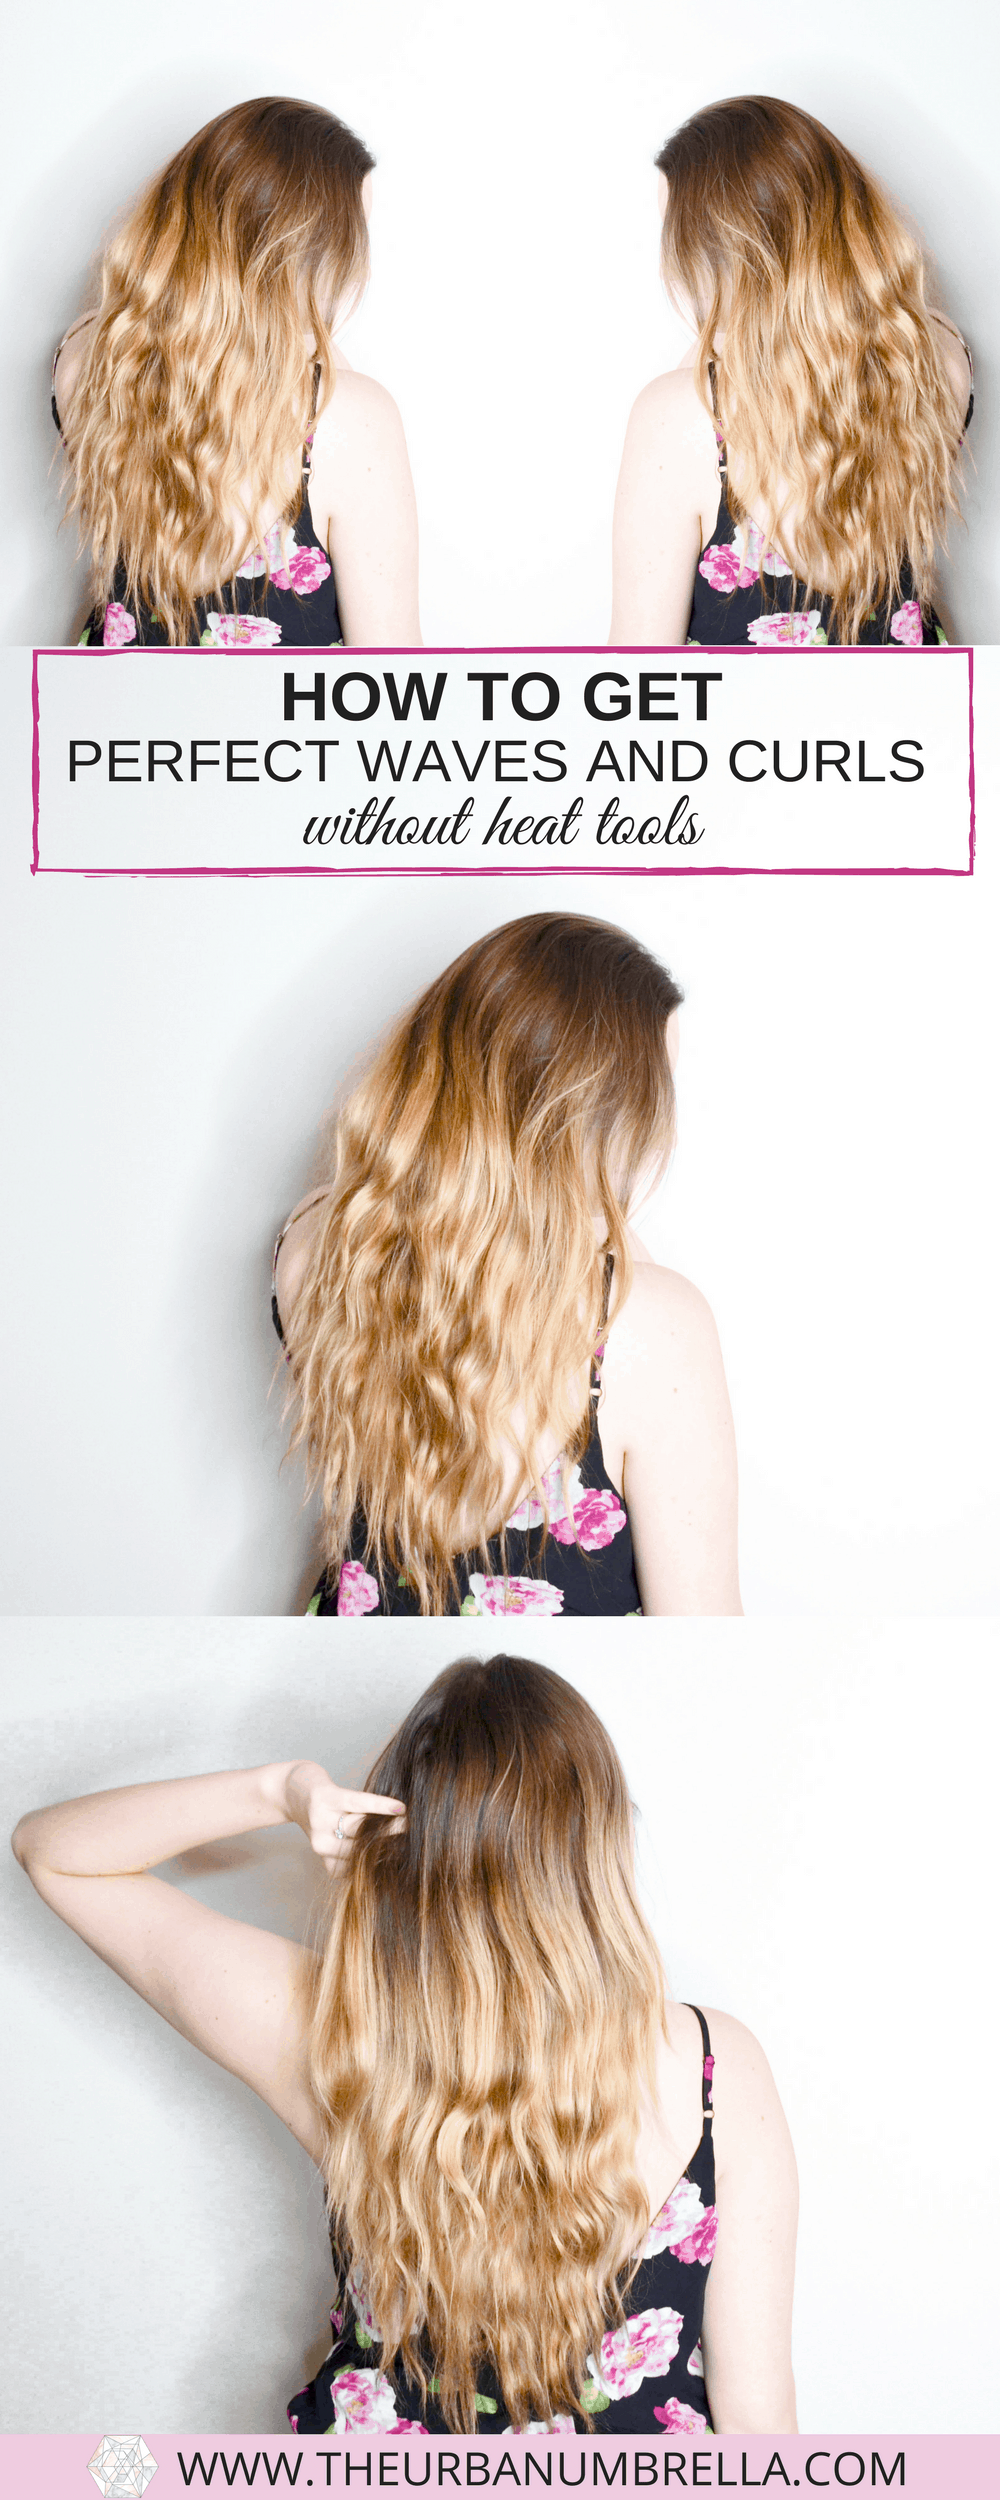 How to Get Perfect Waves Without Heat Tools